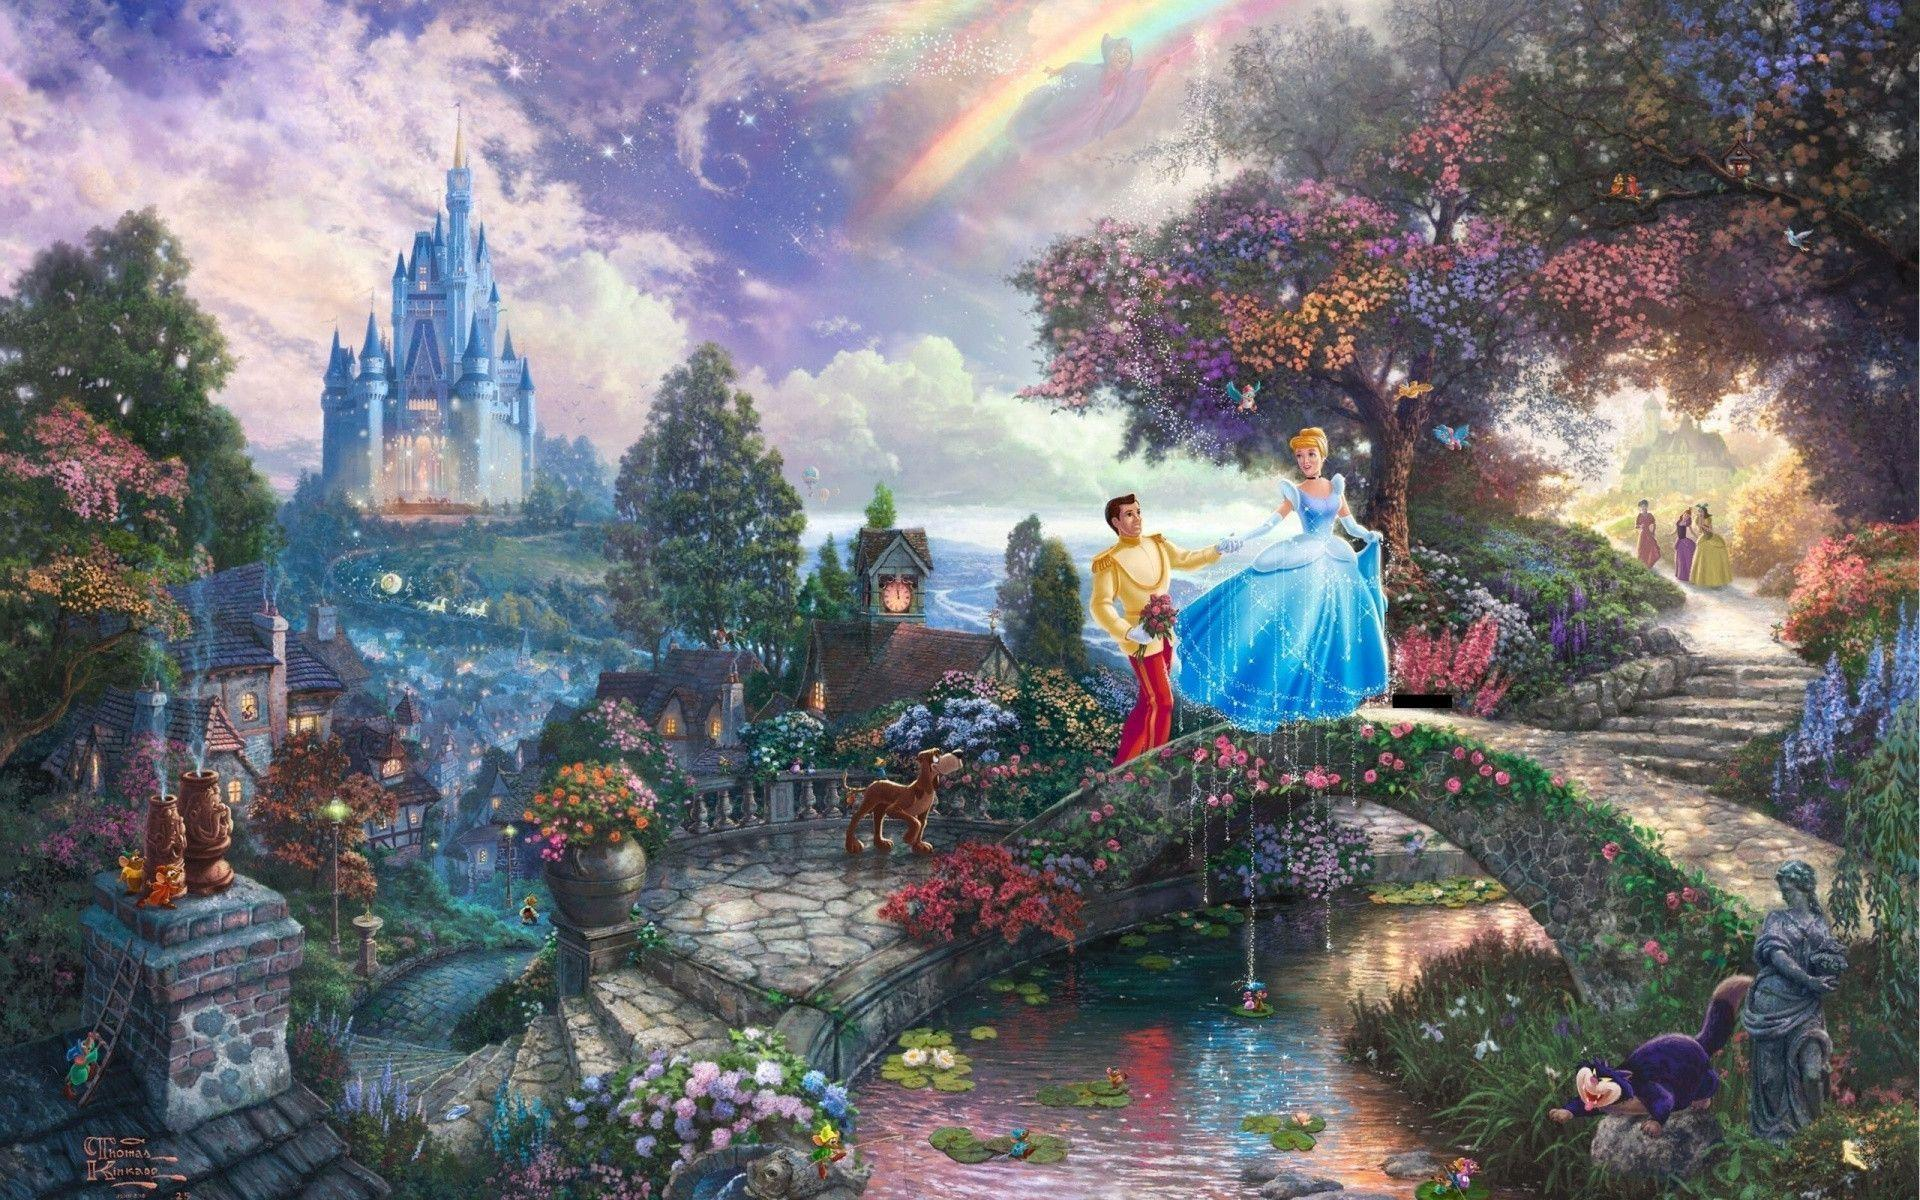 Thomas Kinkade Computer Wallpapers - Wallpaper Cave